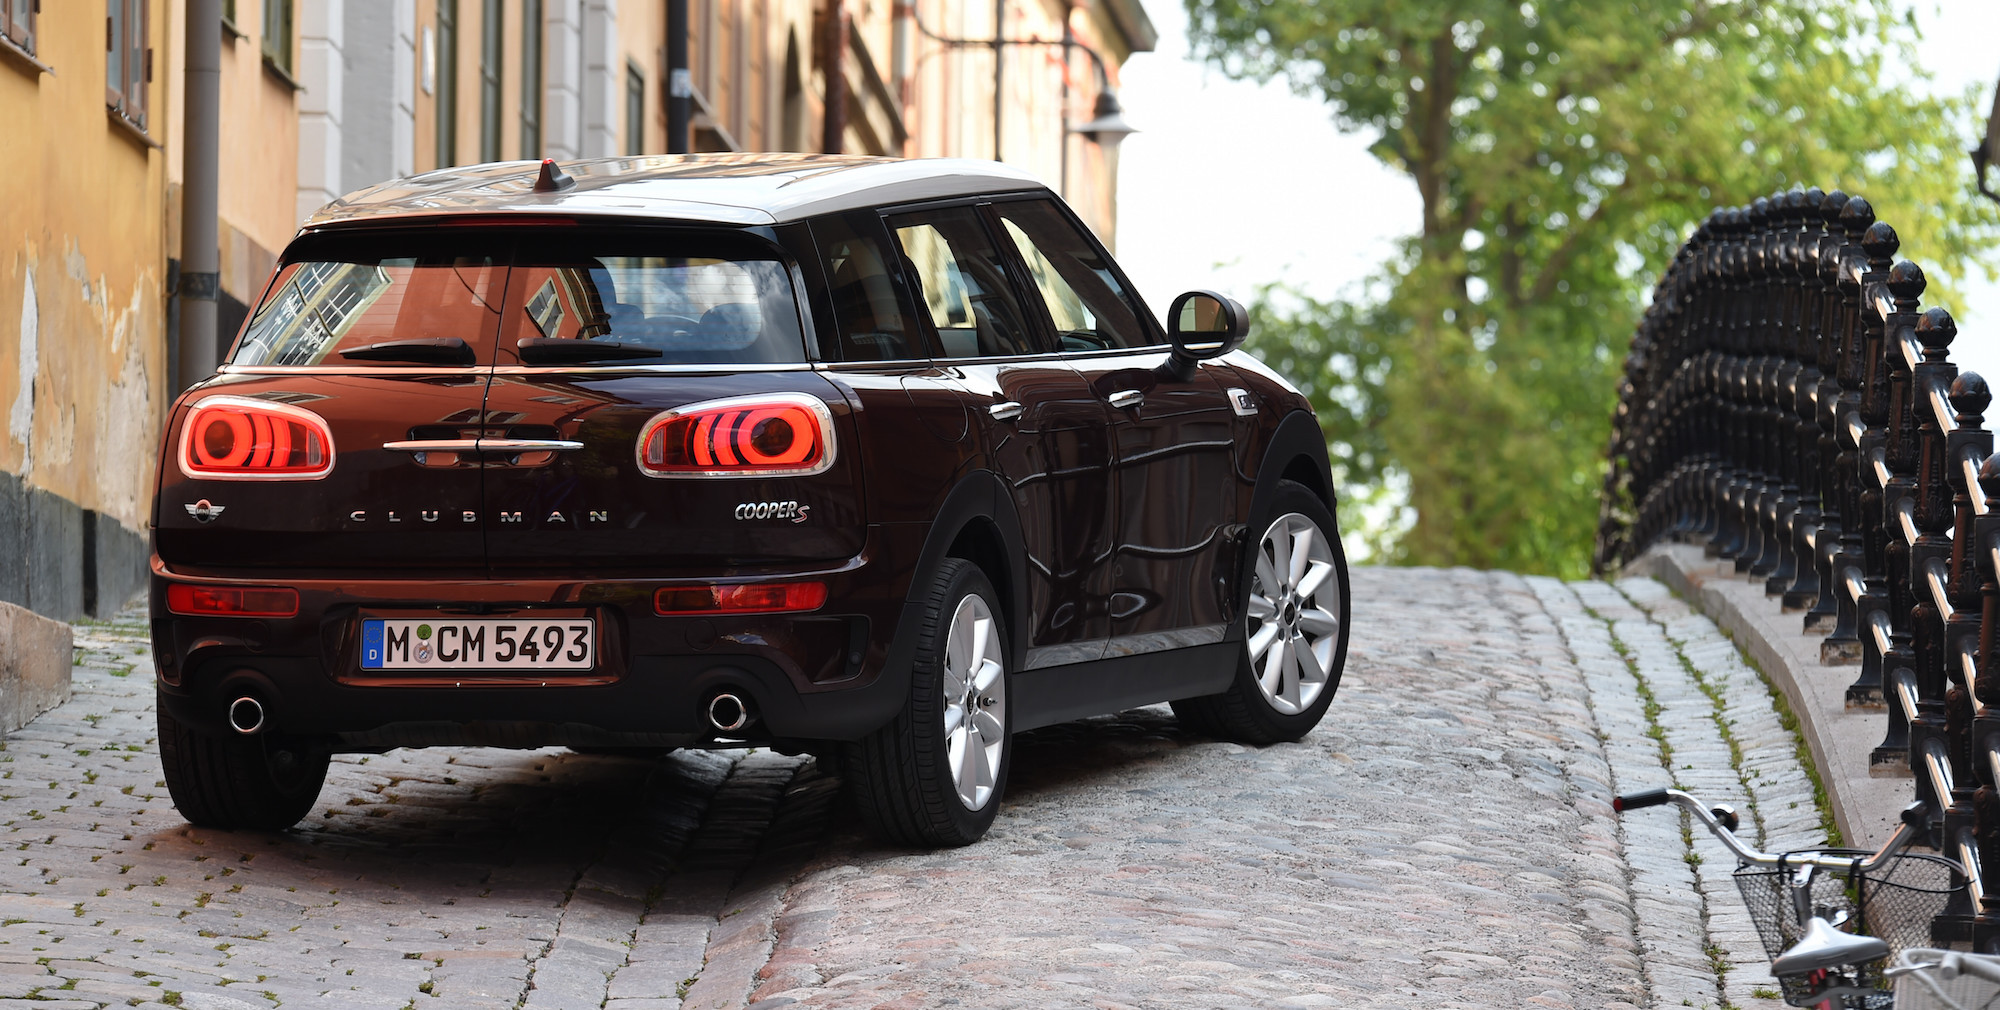 2016 Mini Cooper S Clubman Rear (View 1 of 17)